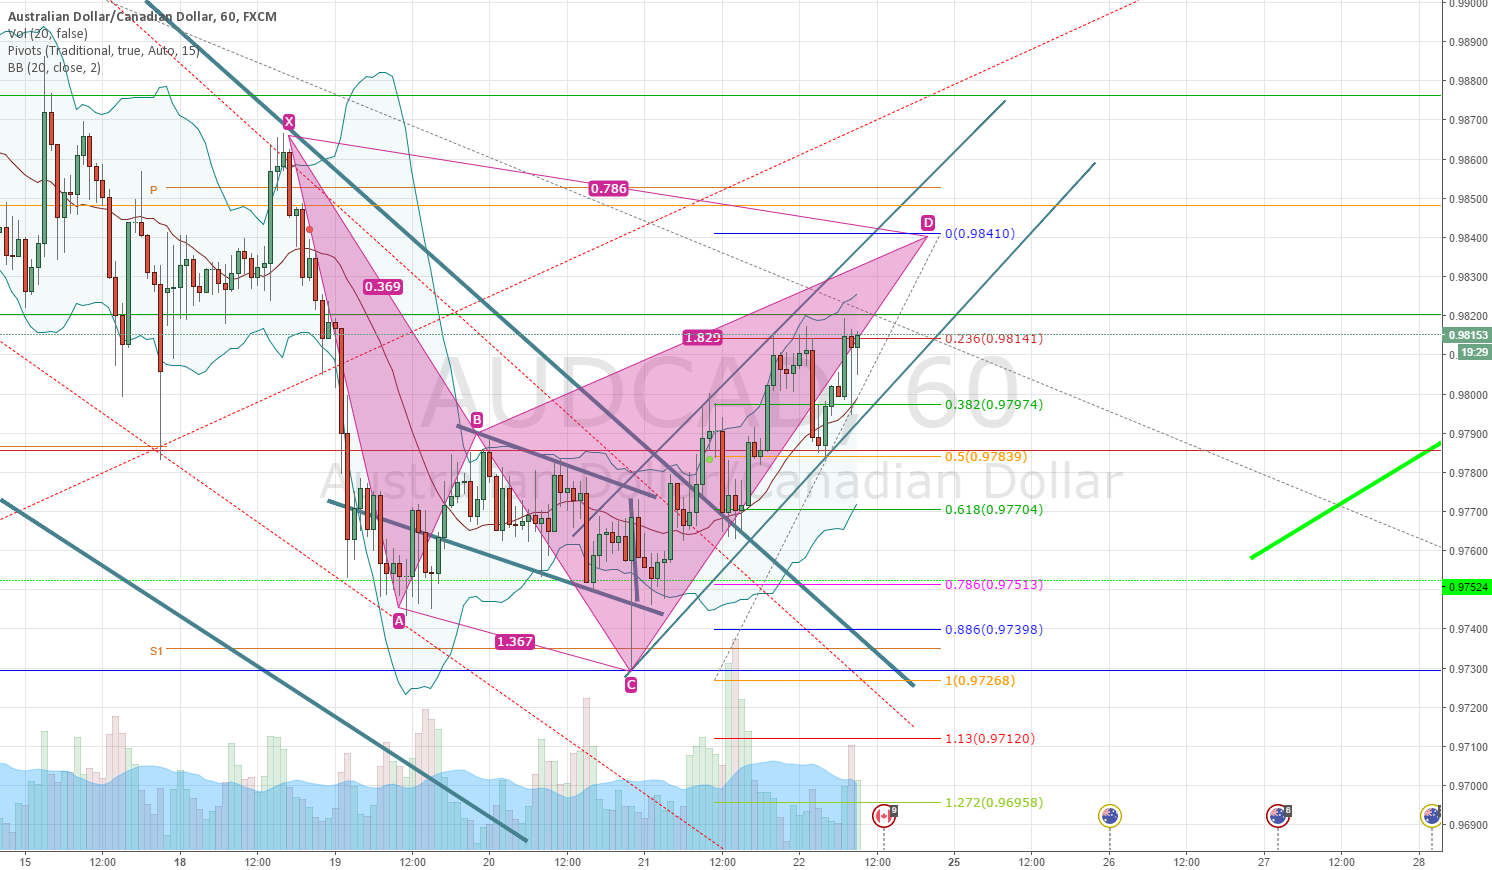 AUDCAD - POTENTIAL CYPHER PATTERN